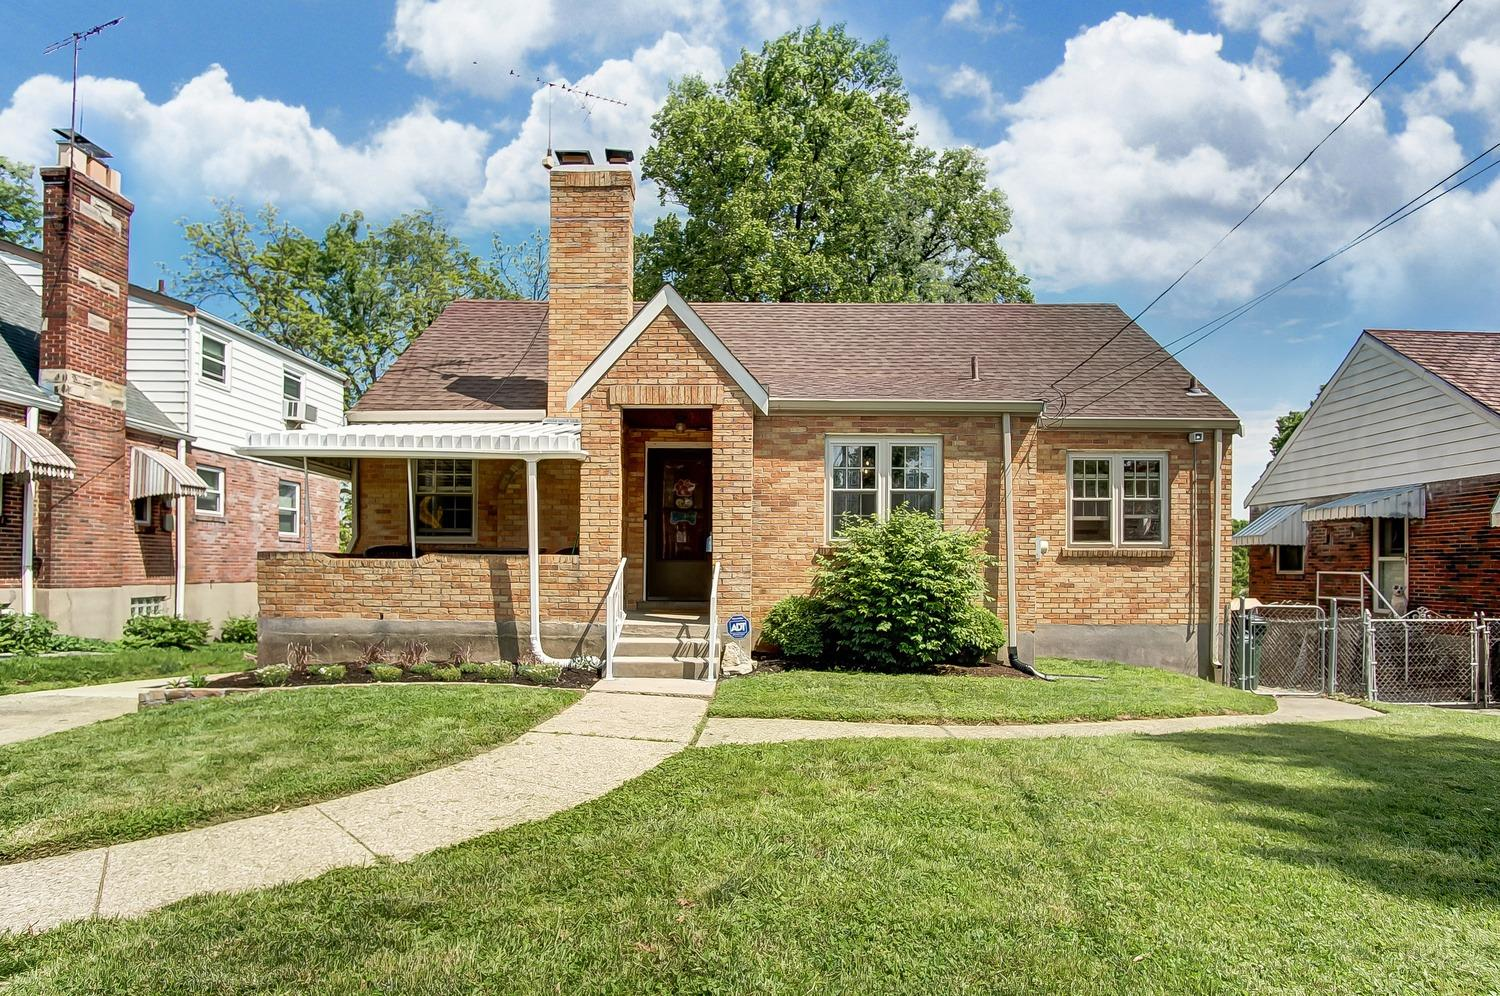 Photo 1 for 4394 Homelawn Ave Bridgetown, OH 45211